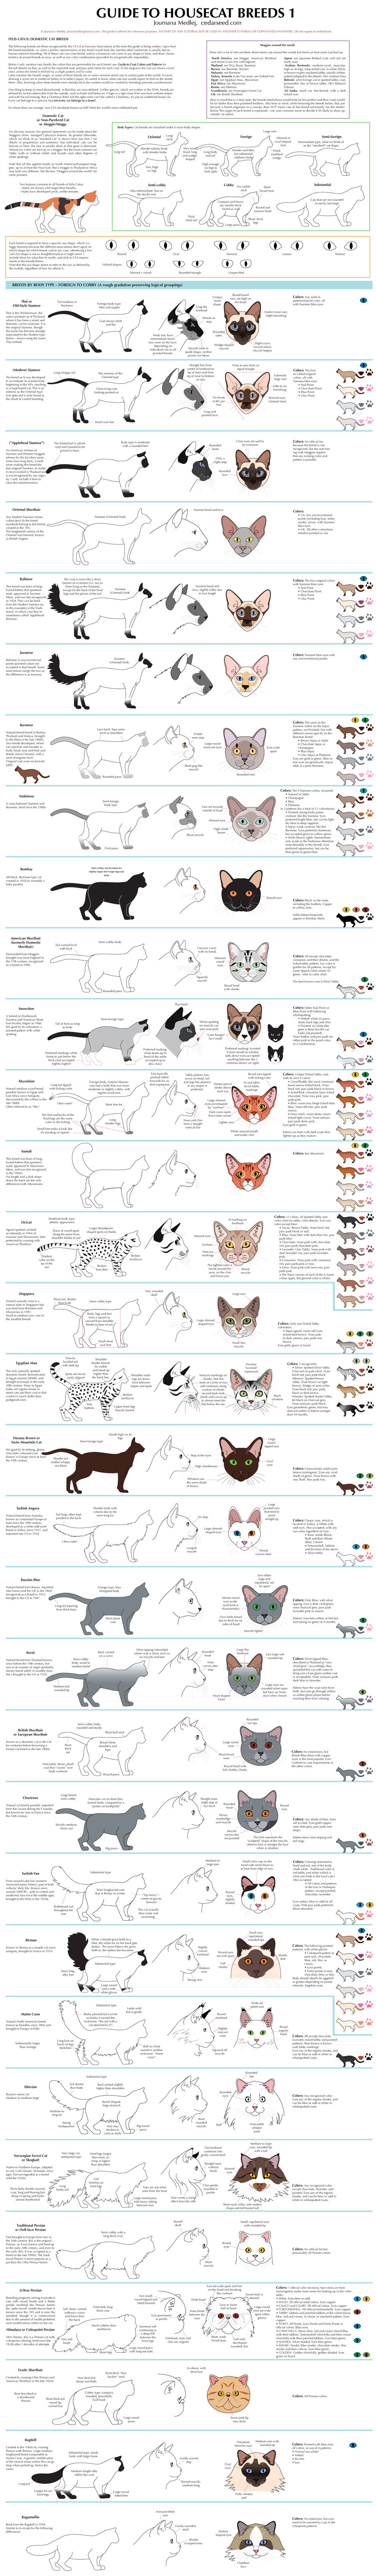 Guide to Housecat Breeds 1 by Majnouna